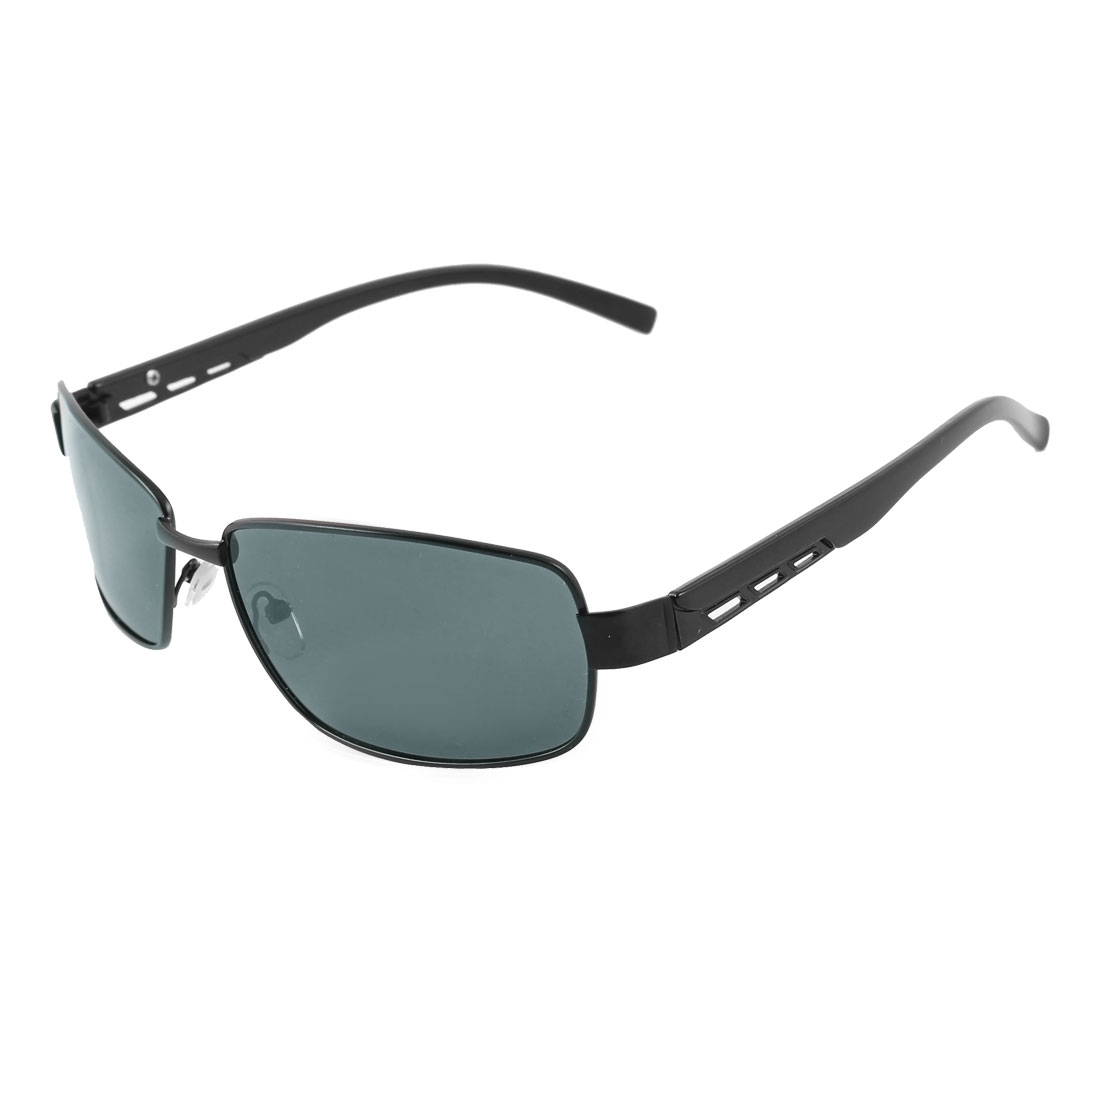 Fashionable Hollow Out Design Arms Black Metal Full Rim Frame Rectangle Shaped Lens Leisure Polarized Glasses for Man